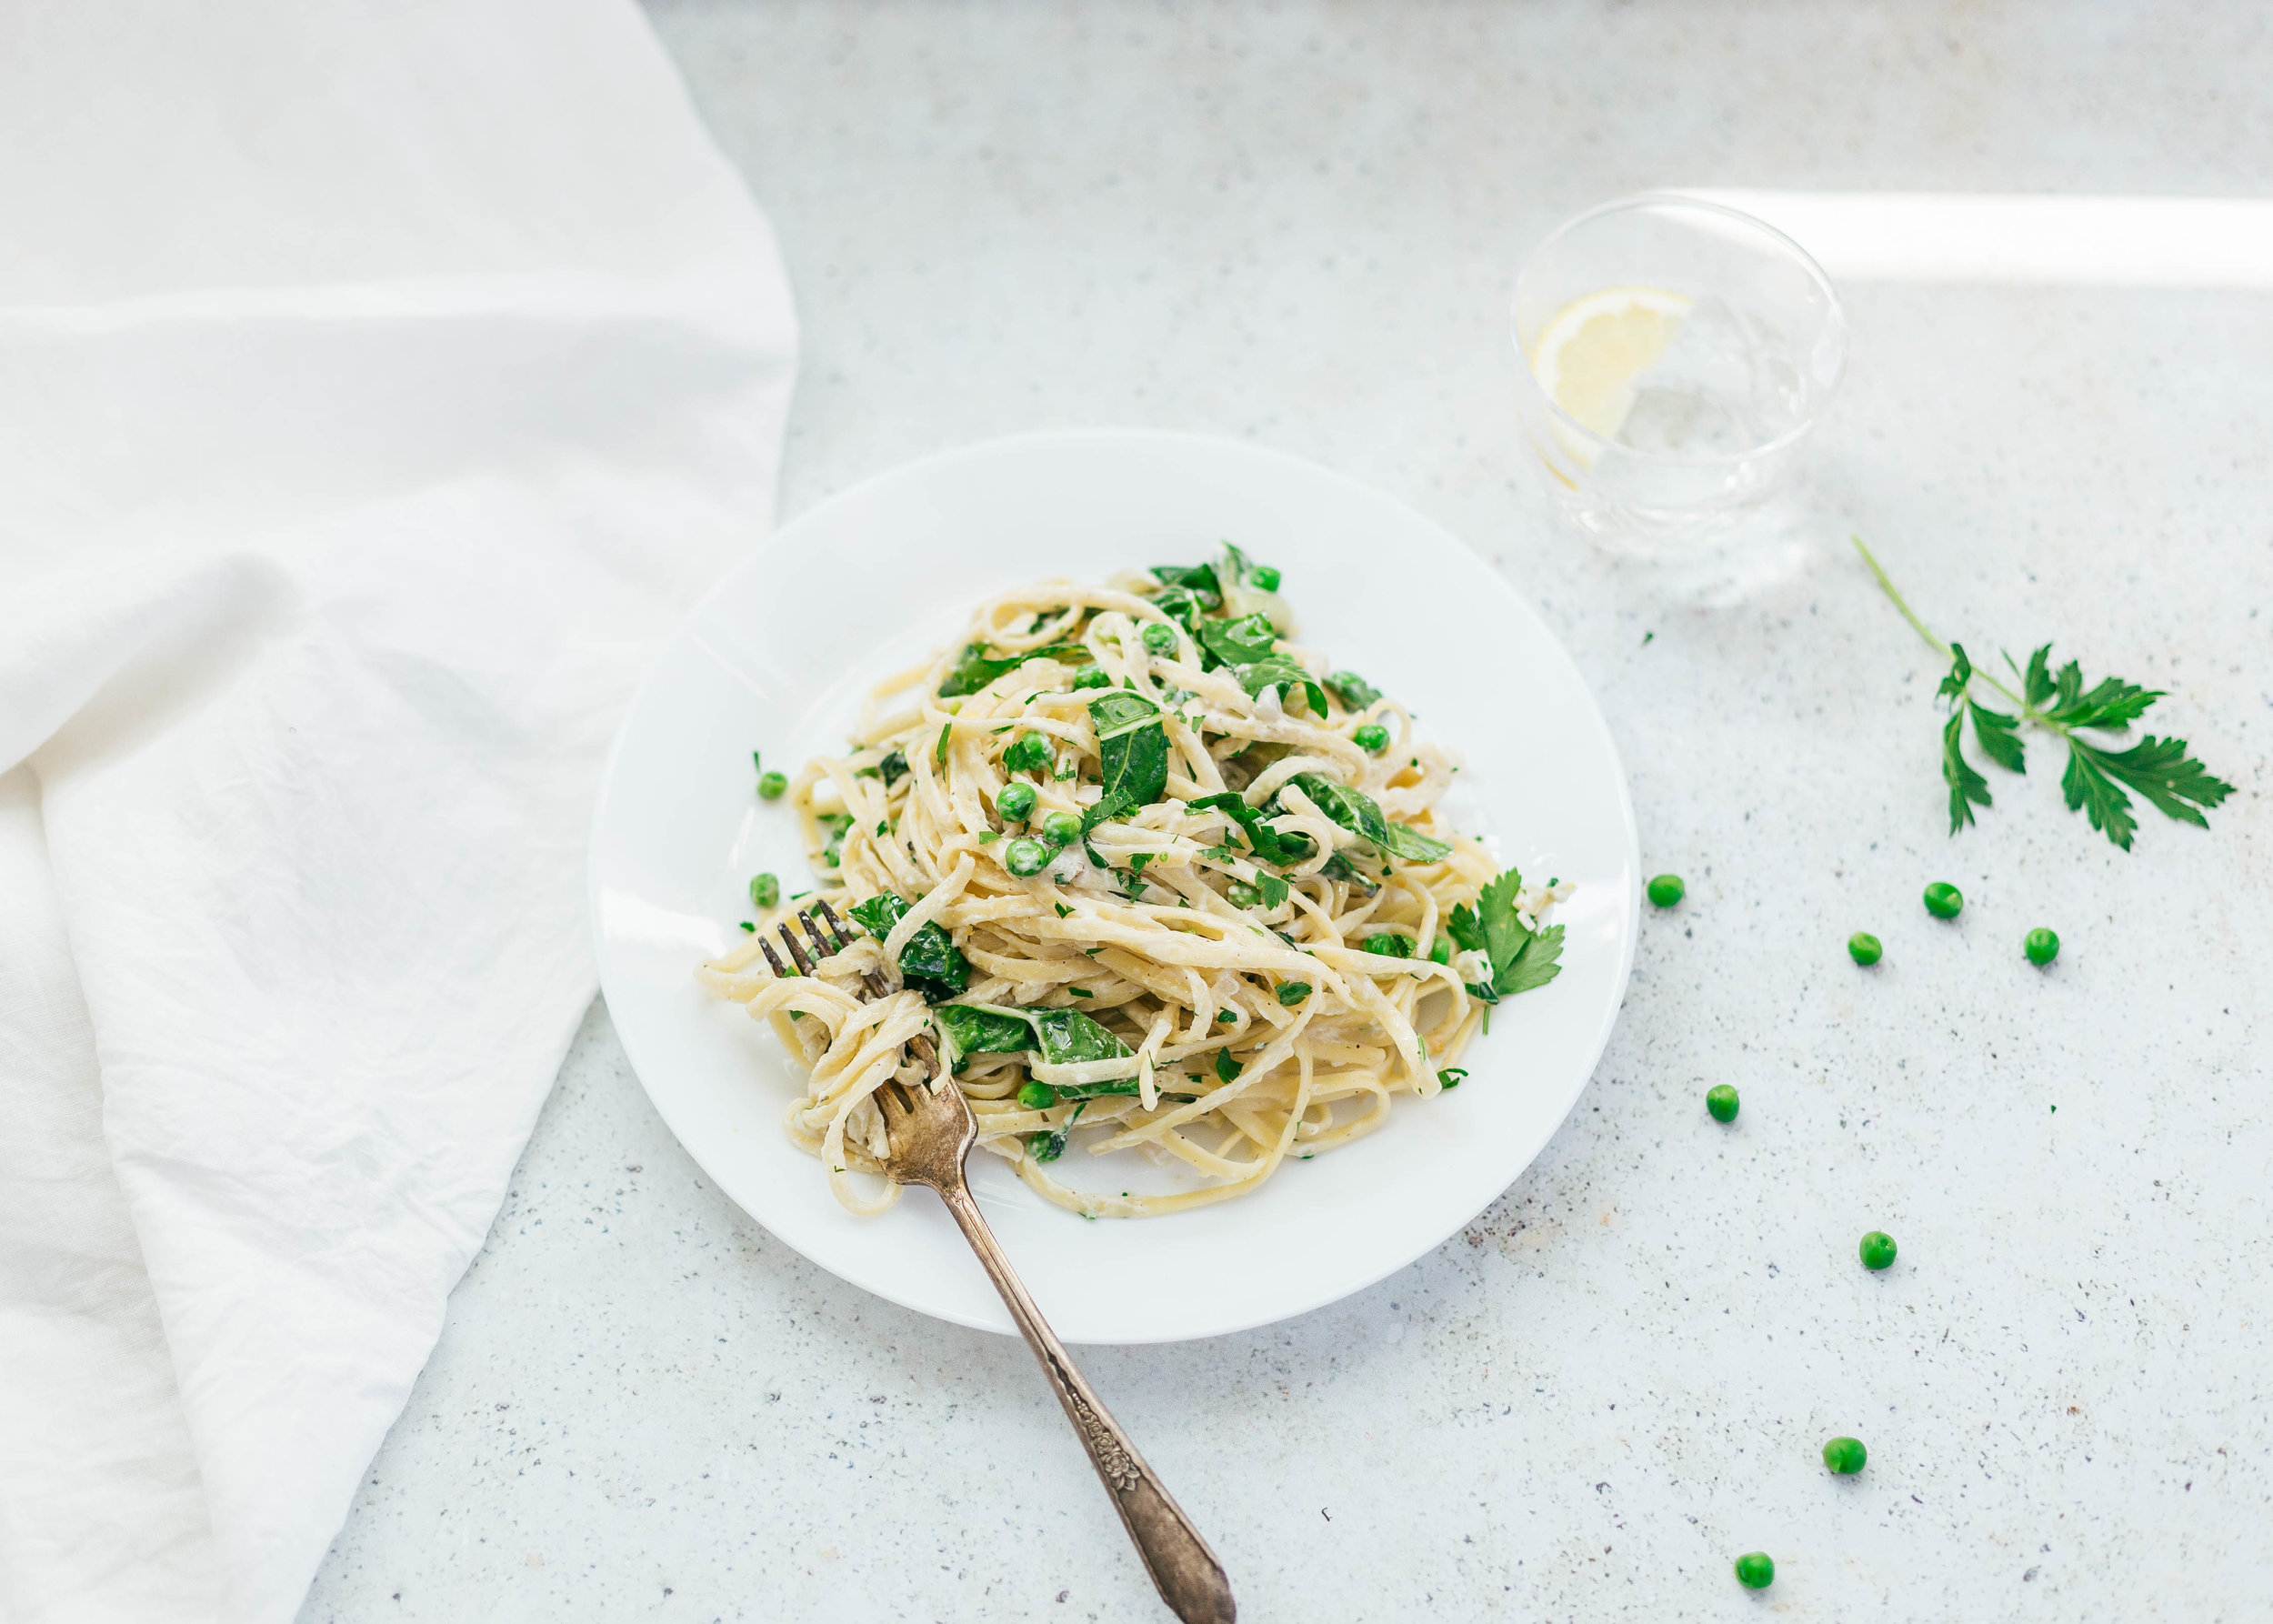 fresh-prep-linguine-and-greens-vancouver-meal-kit-1.jpg